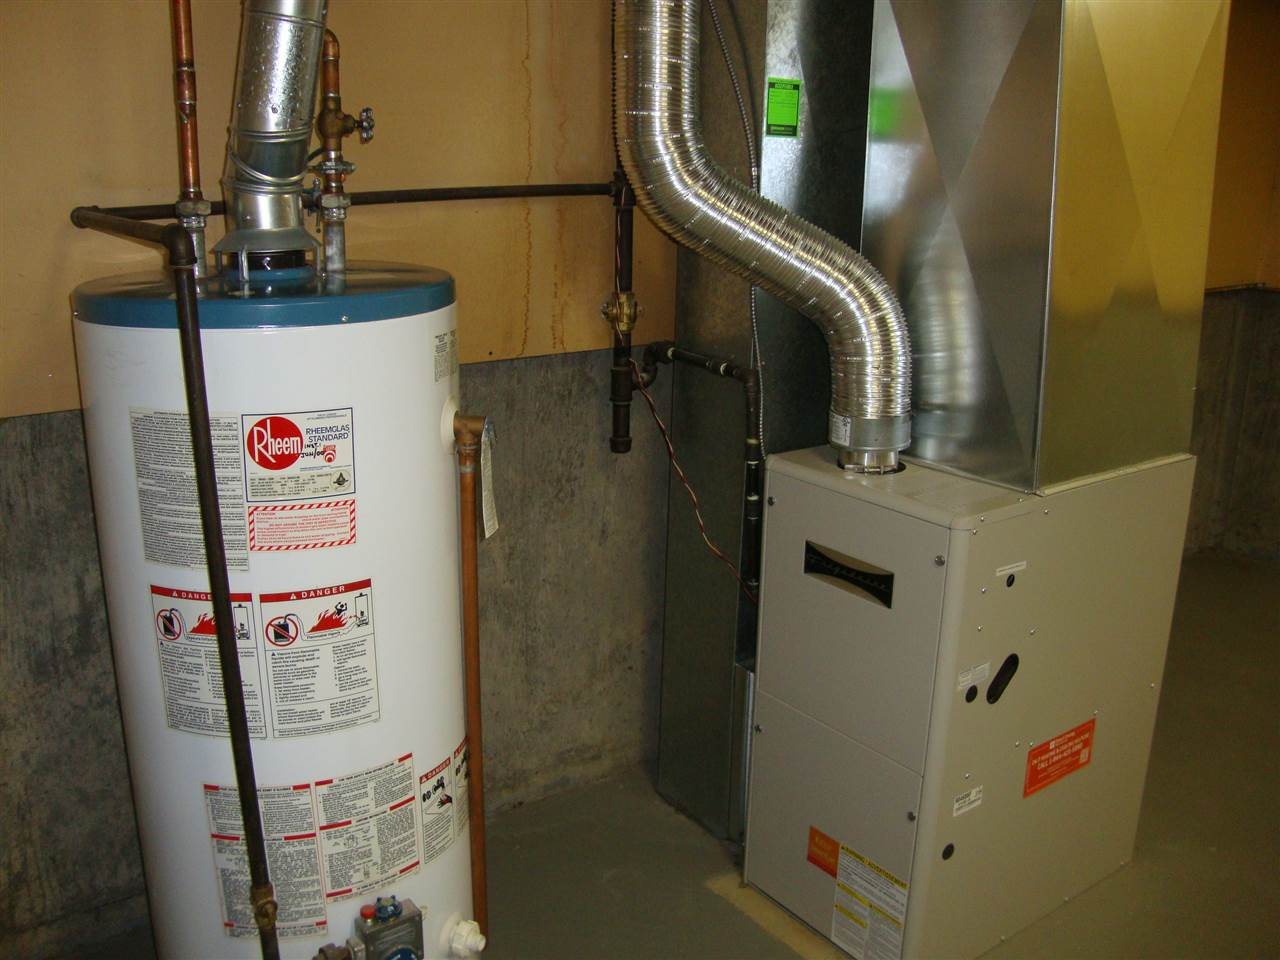 Utility area has a newer 2009 mid efficient furnace.